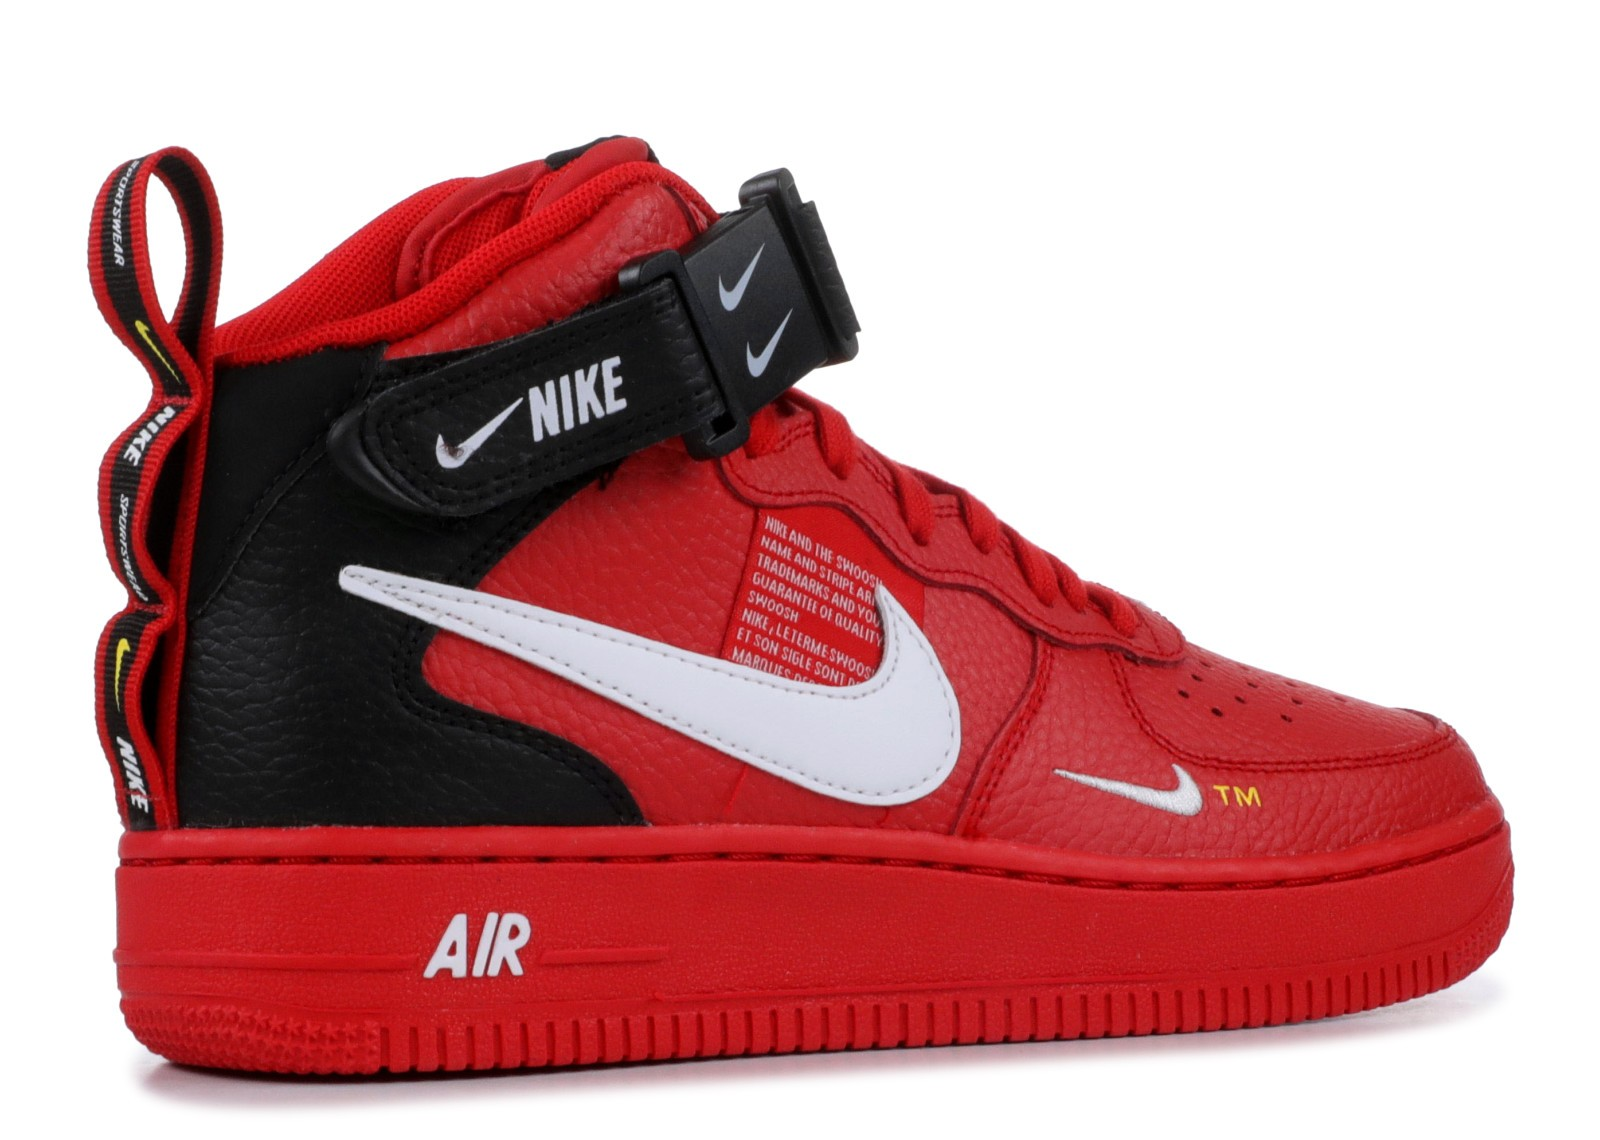 Utility University Nike 1 Lv8 Mid Black Air Av3803 600 Force Red dCxeWBor